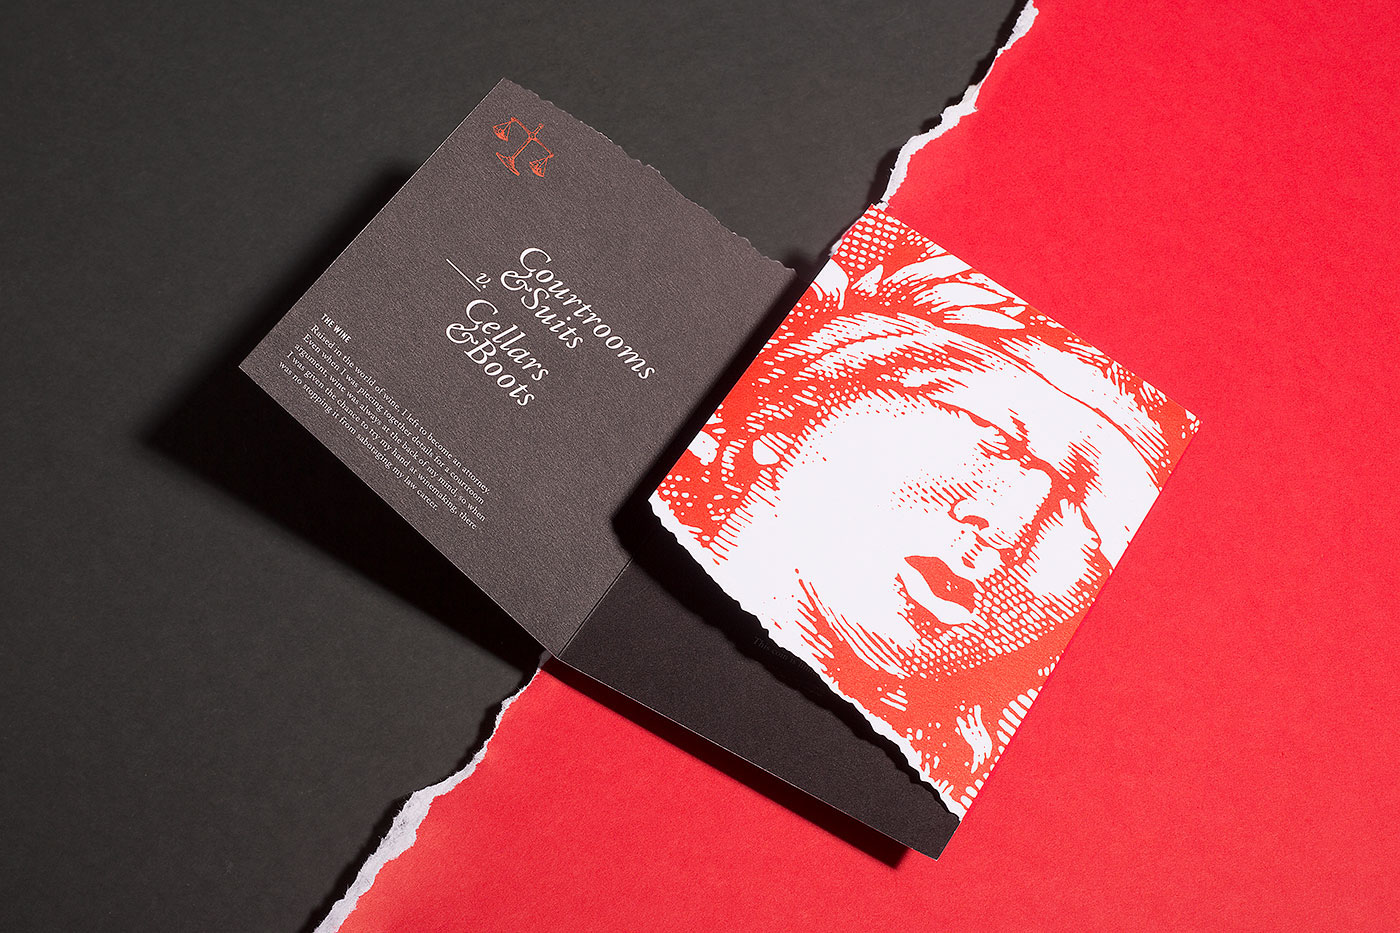 wine Label foil foil stamping hot stamping invite coin seal Lady of justice cabernet